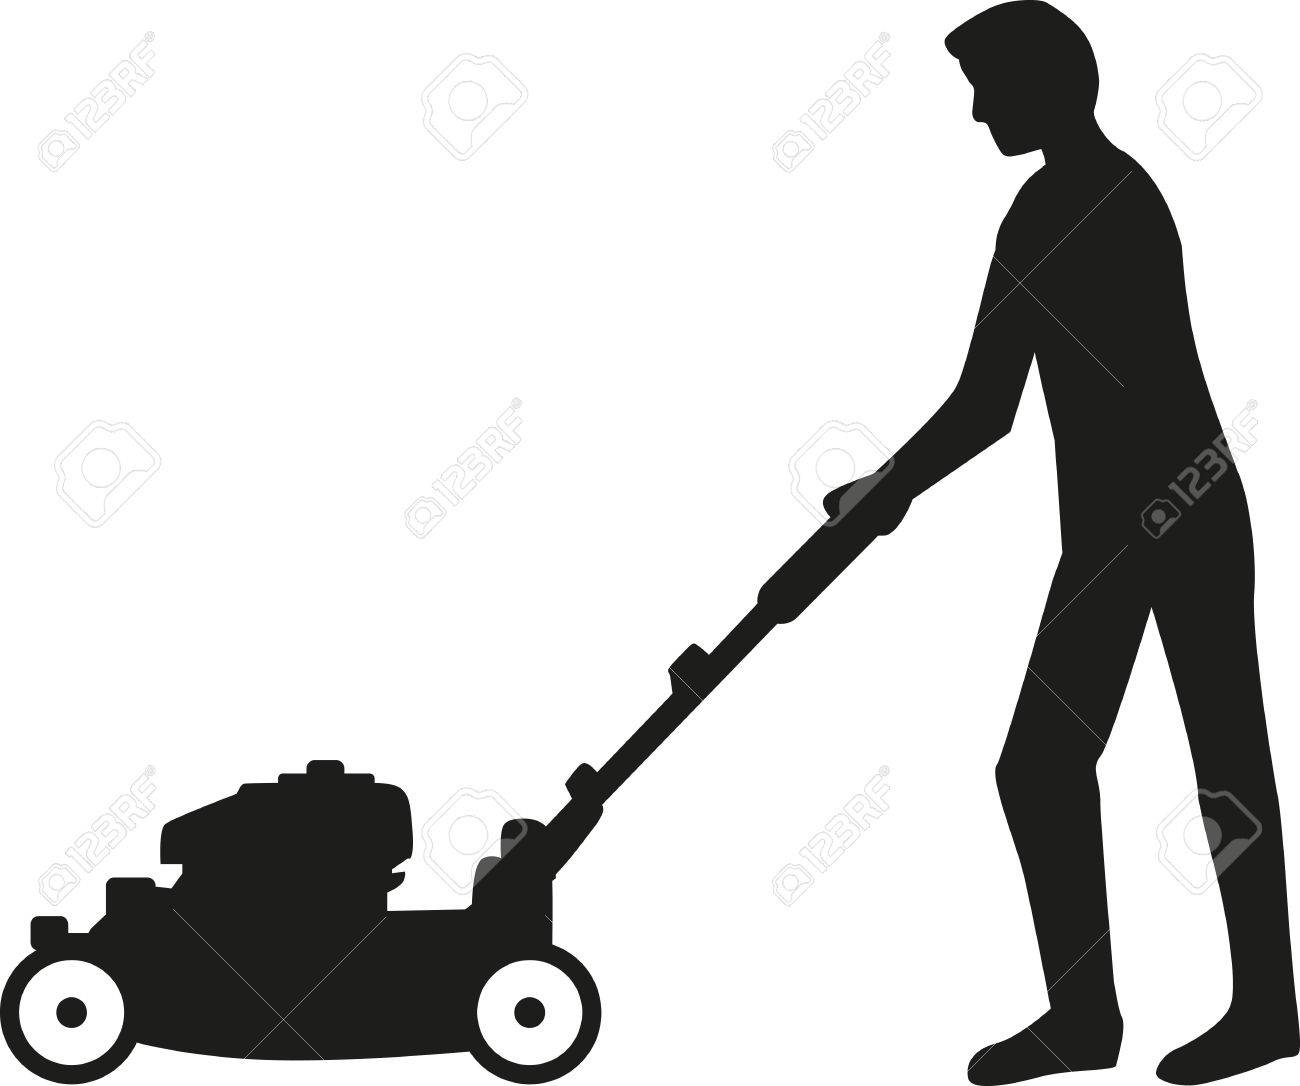 Man using lawn mower silhouette.